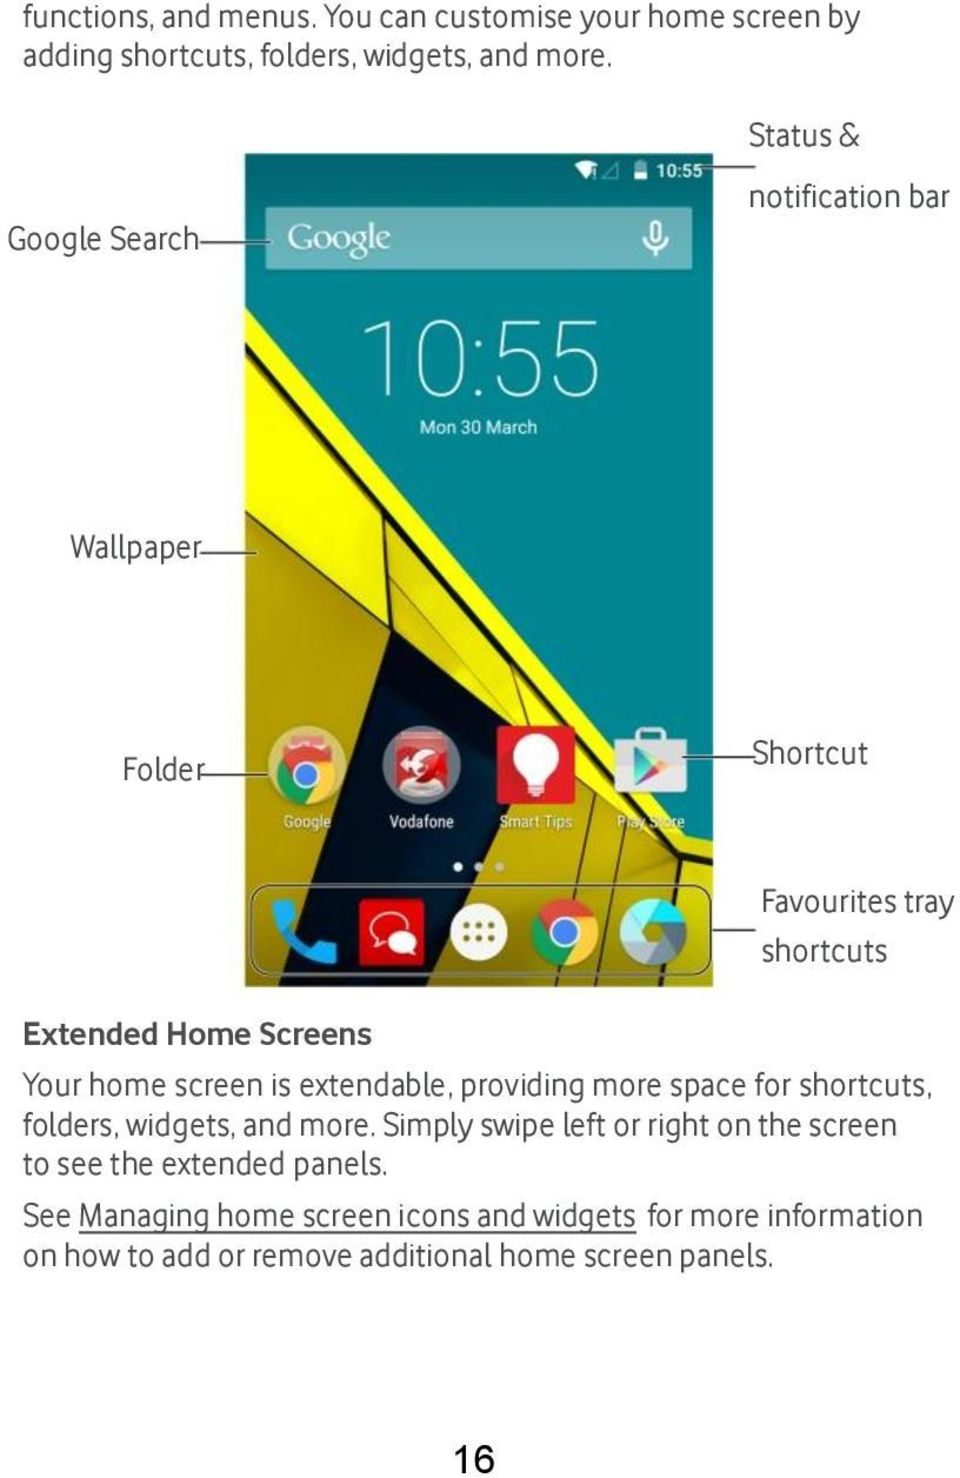 screen is extendable, providing more space for shortcuts, folders, widgets, and more.